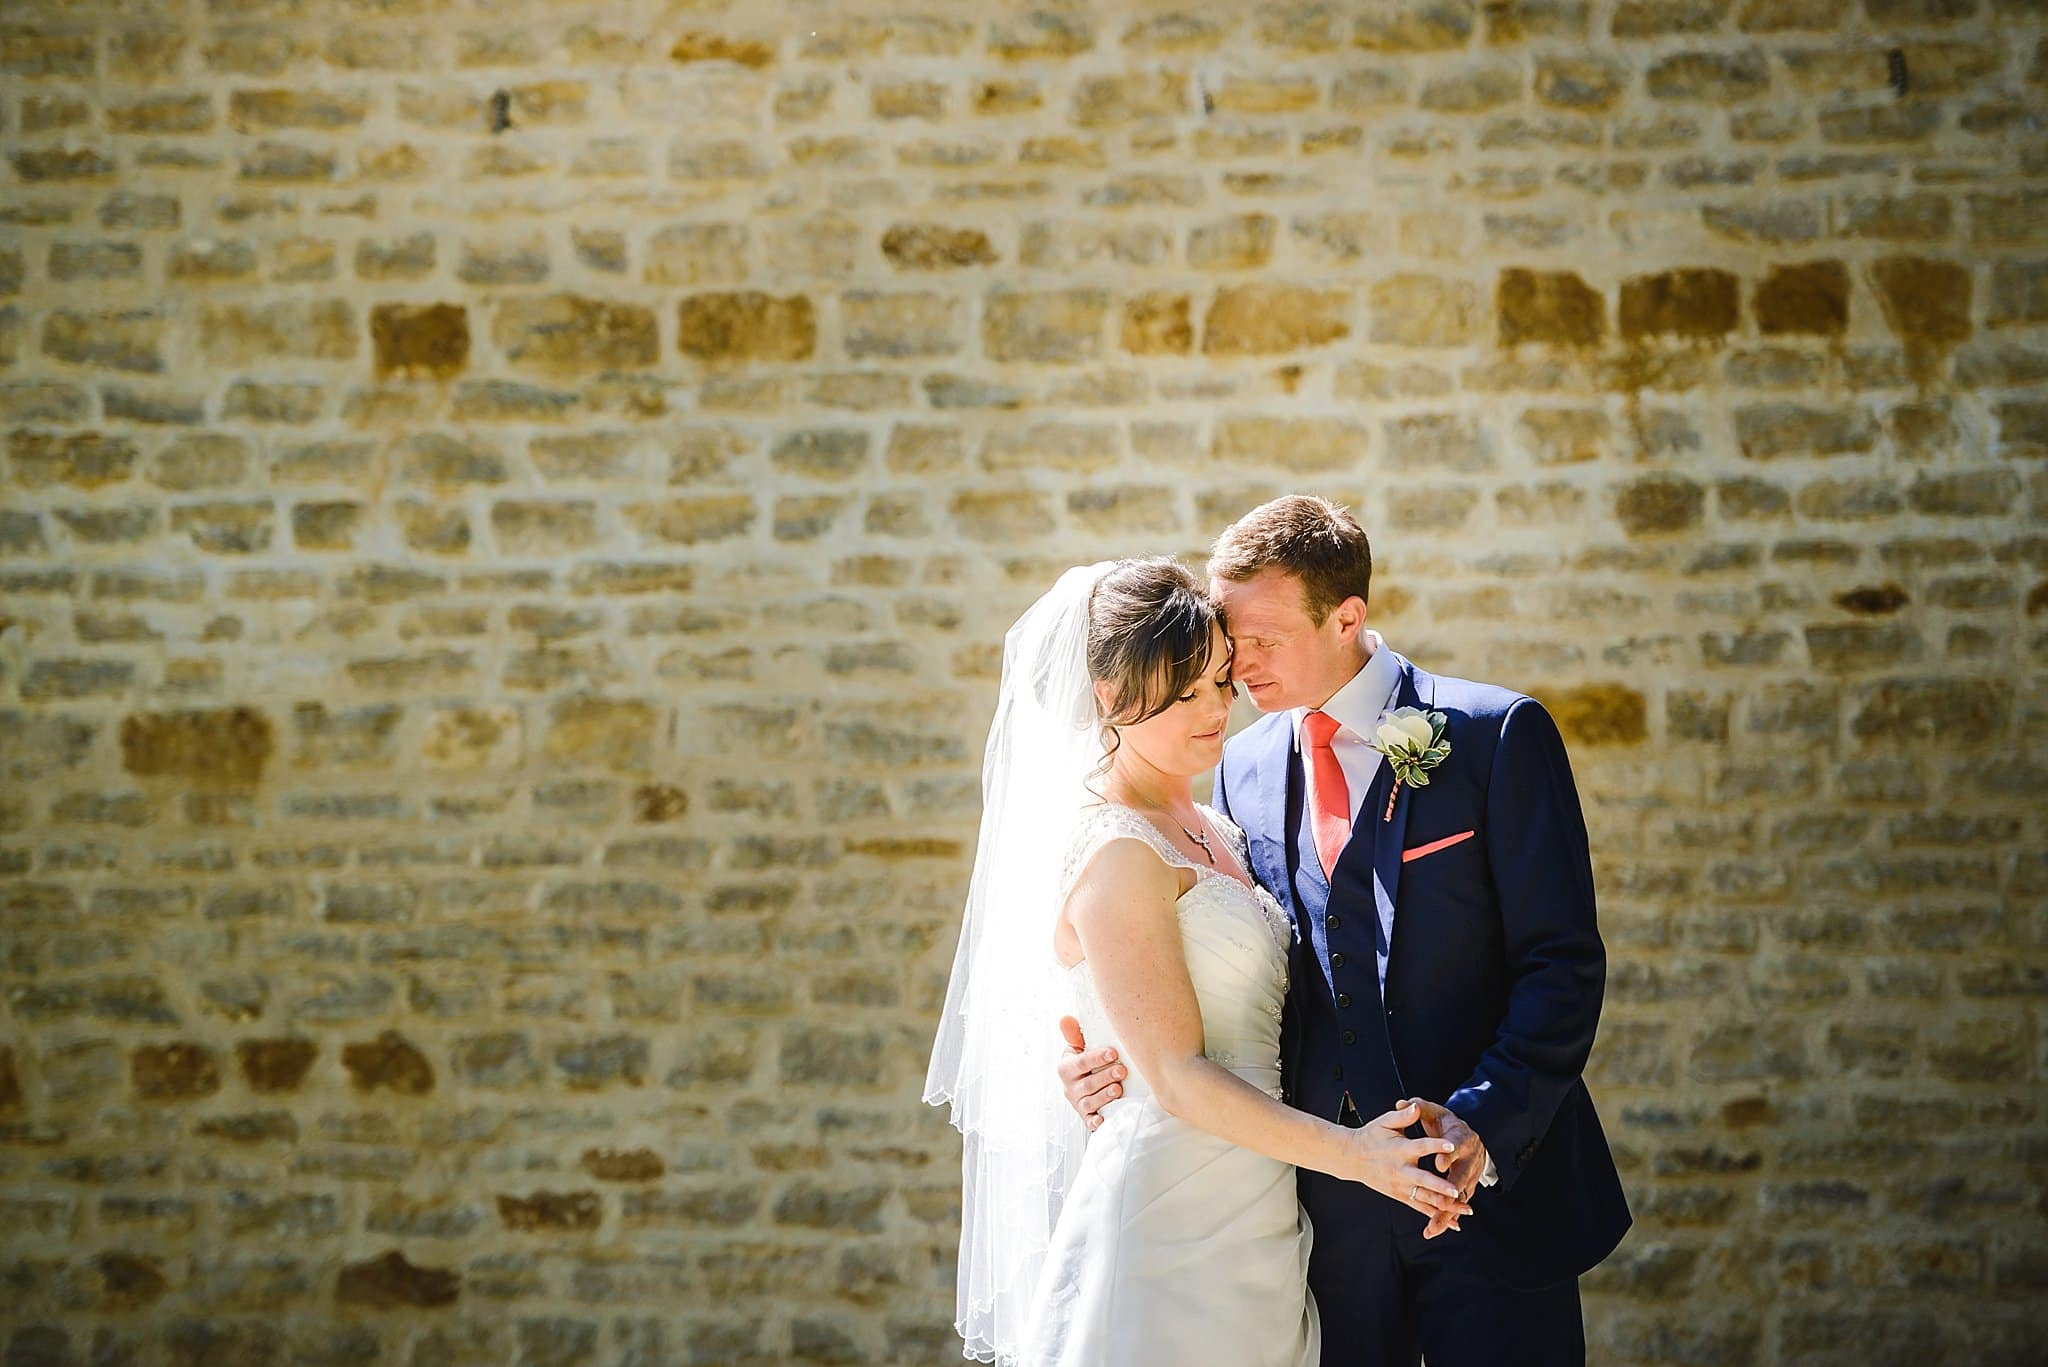 Bride & Groom holding hands in the grounds of the Hare and Hounds, Tetbury, Gloucester wedding photographer